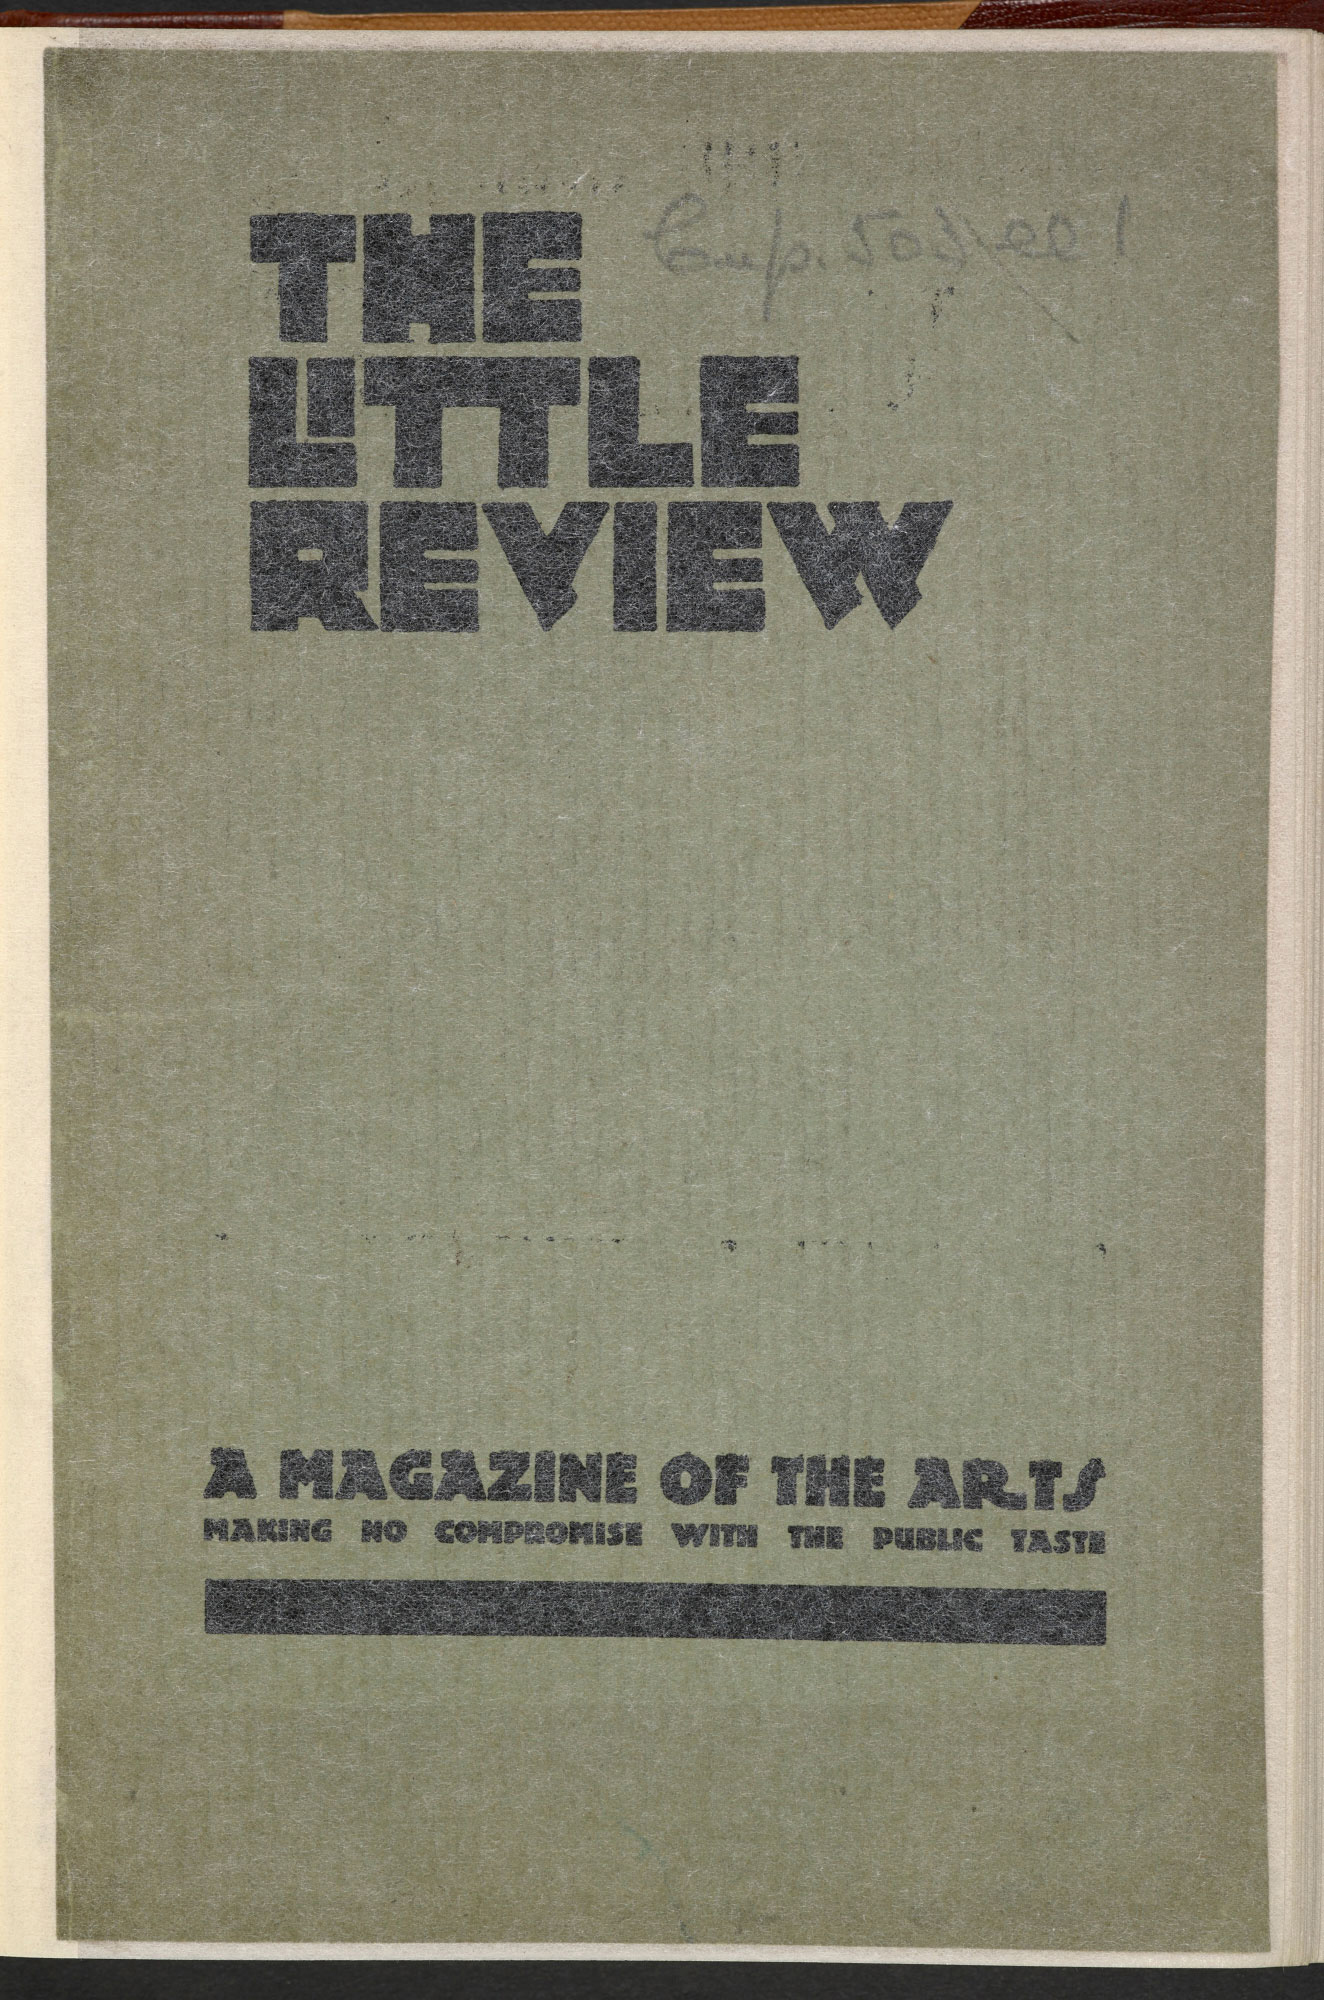 Instalment of Ulysses (episode XIII, Nausicaa) in The Little Review, April 1920